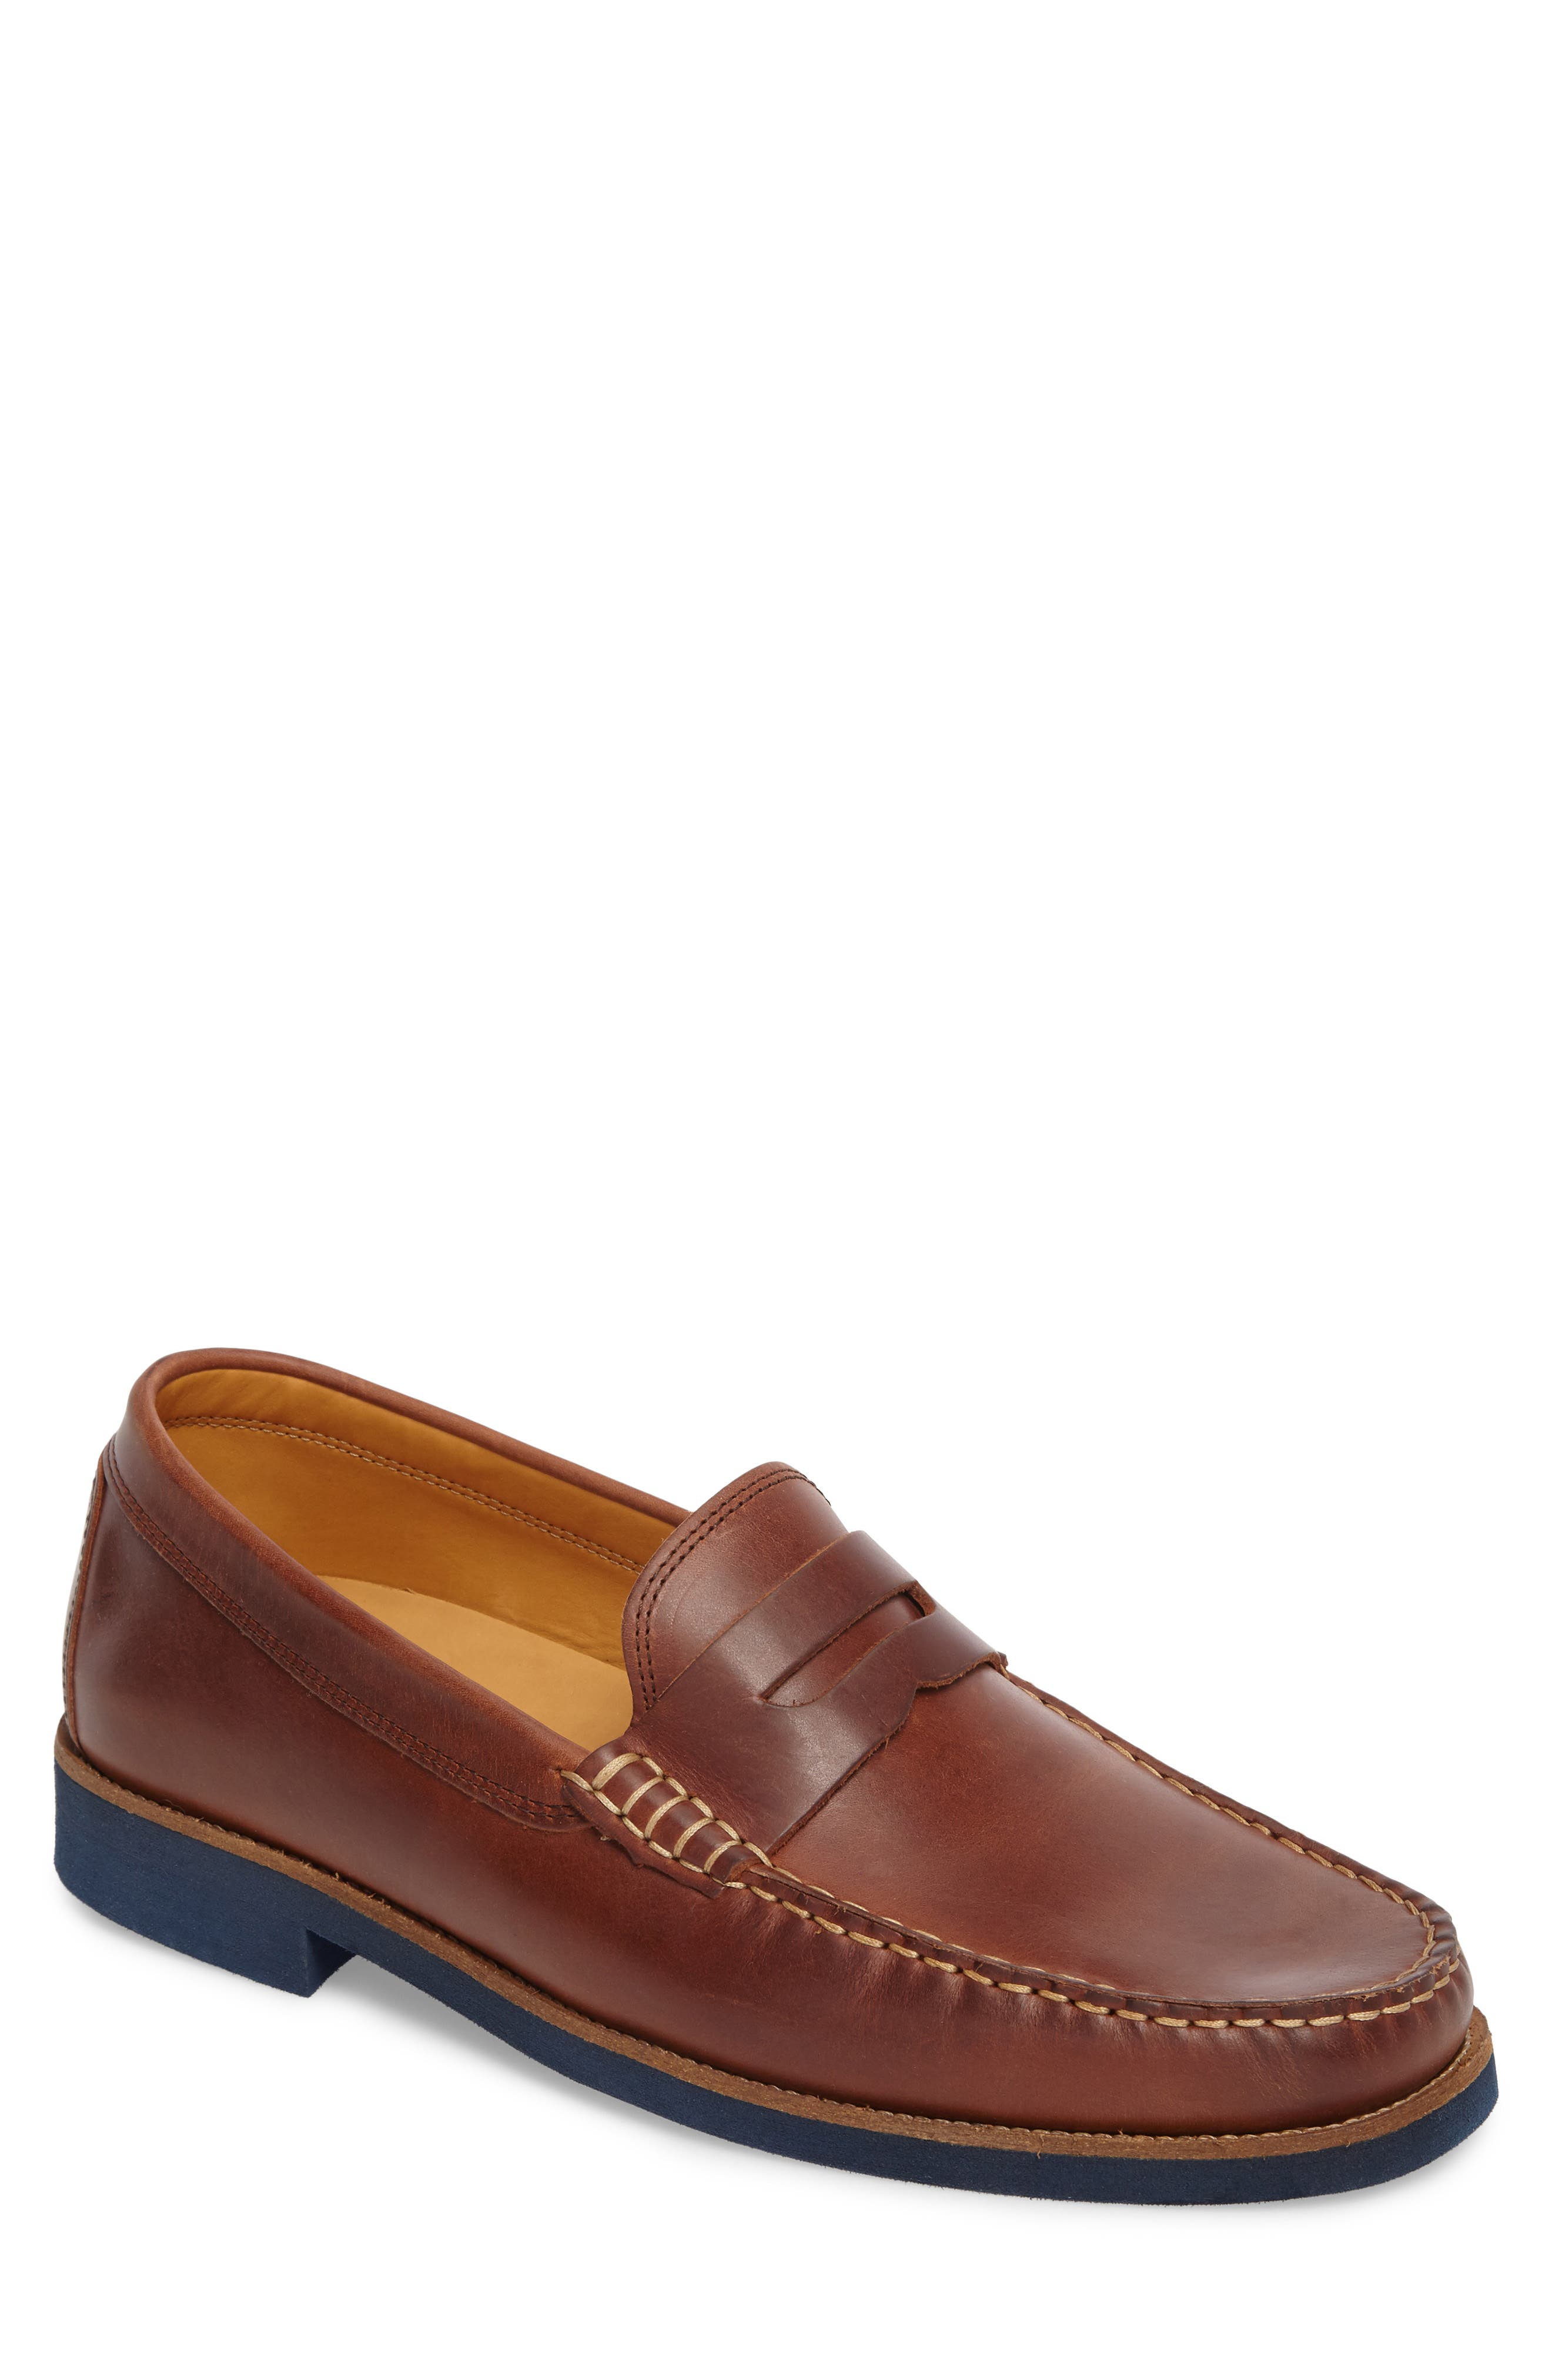 Lincolns Penny Loafer,                             Main thumbnail 1, color,                             LIGHT BROWN